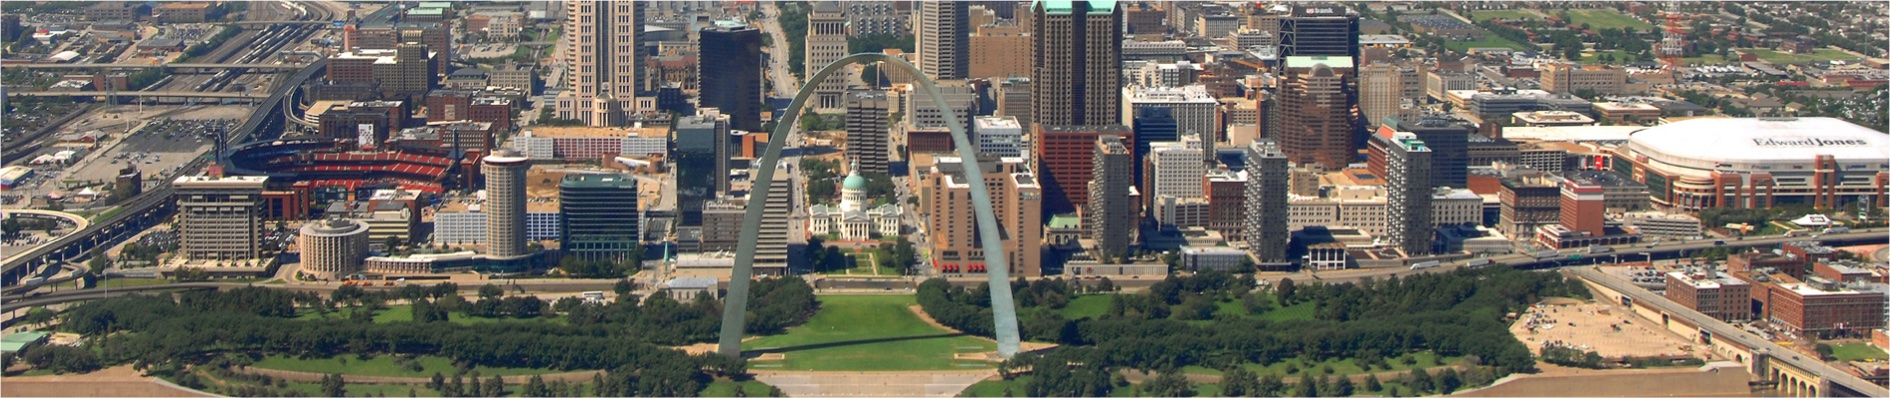 St._Louis_skyline_and_arch